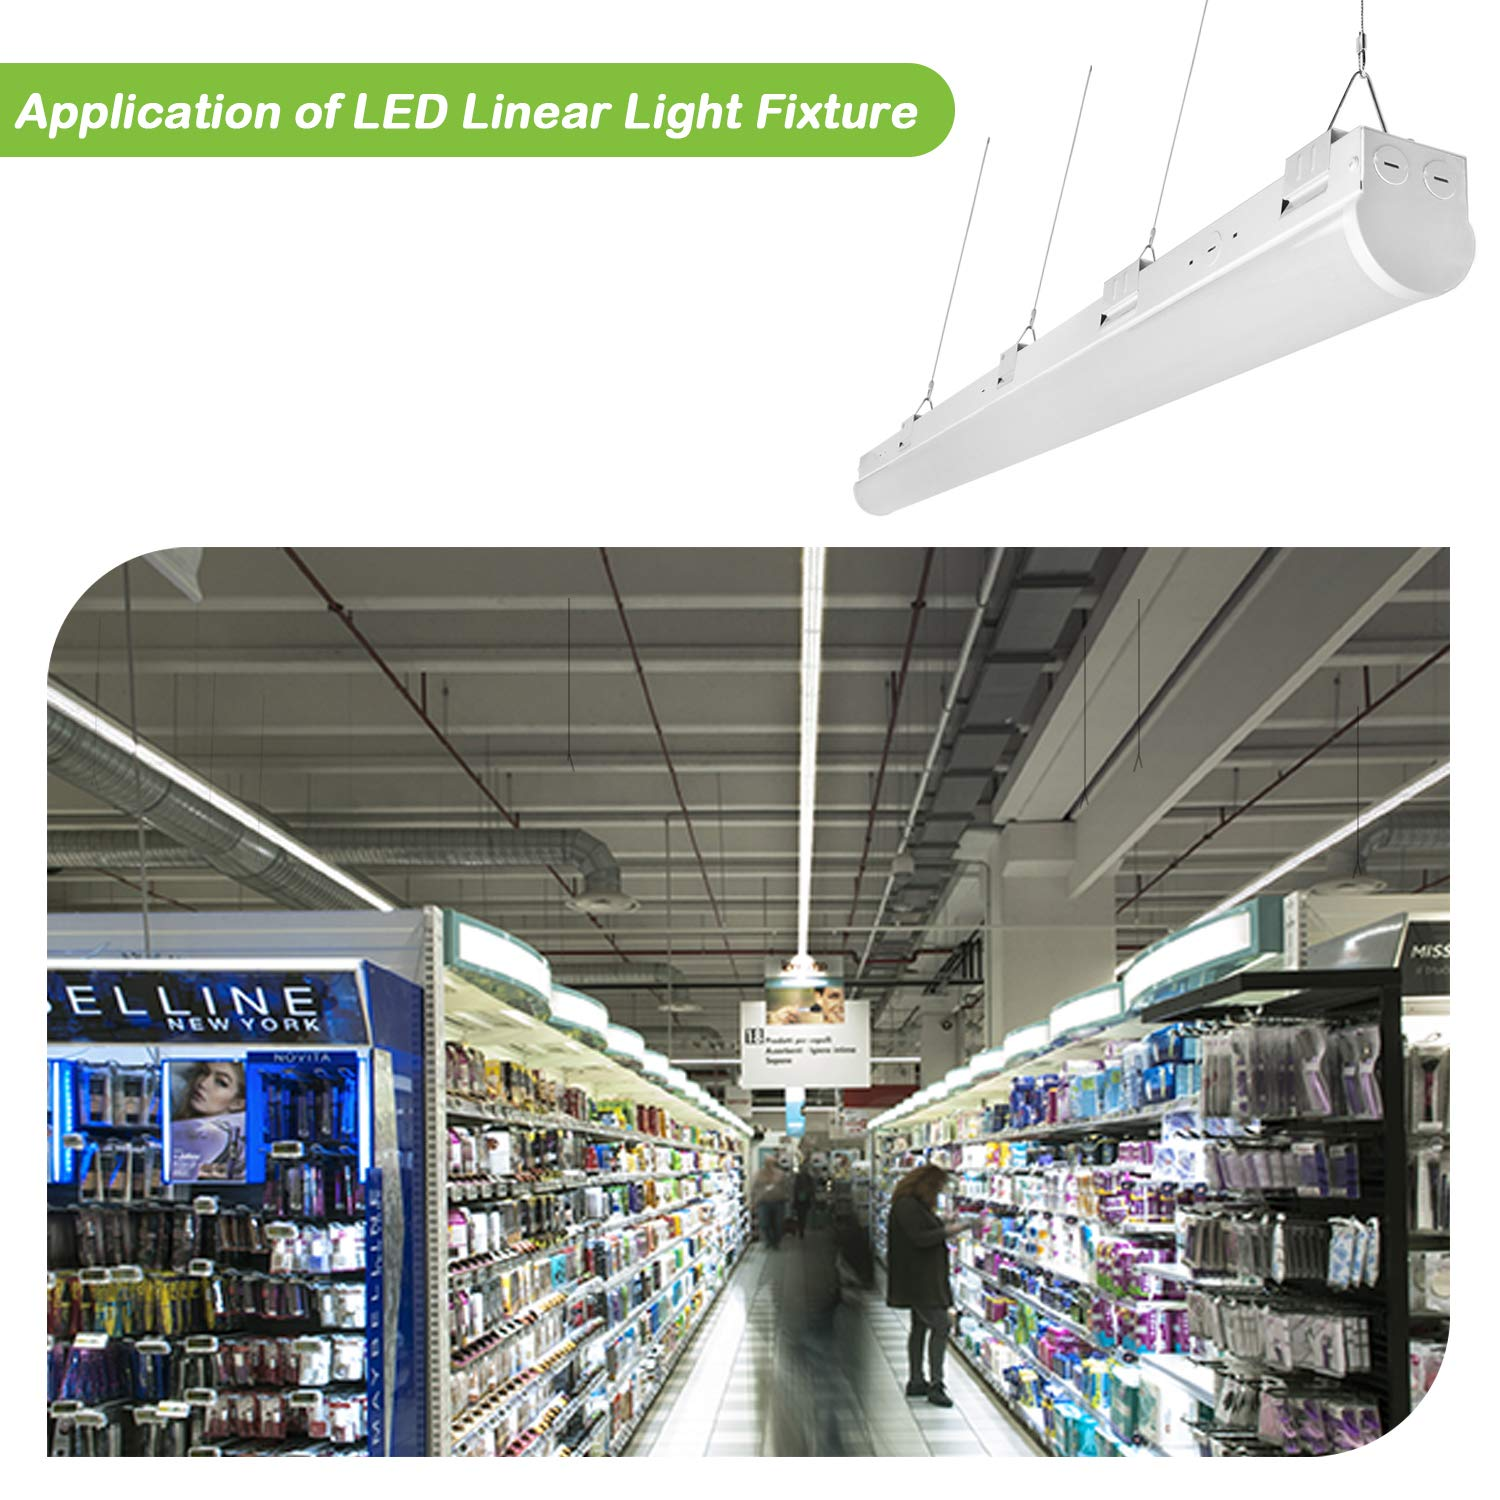 Hykolity 8FT LED Shop Linear Strip Light Fixture Linkable 64W 8400lm Replaces up to 4-lamp 32-Watt T8 fluorescent Tube Low Bay Commercial Industrial 5000K 0-10V Dimmable UL DLC Listed 2 Pack by hykolity (Image #8)